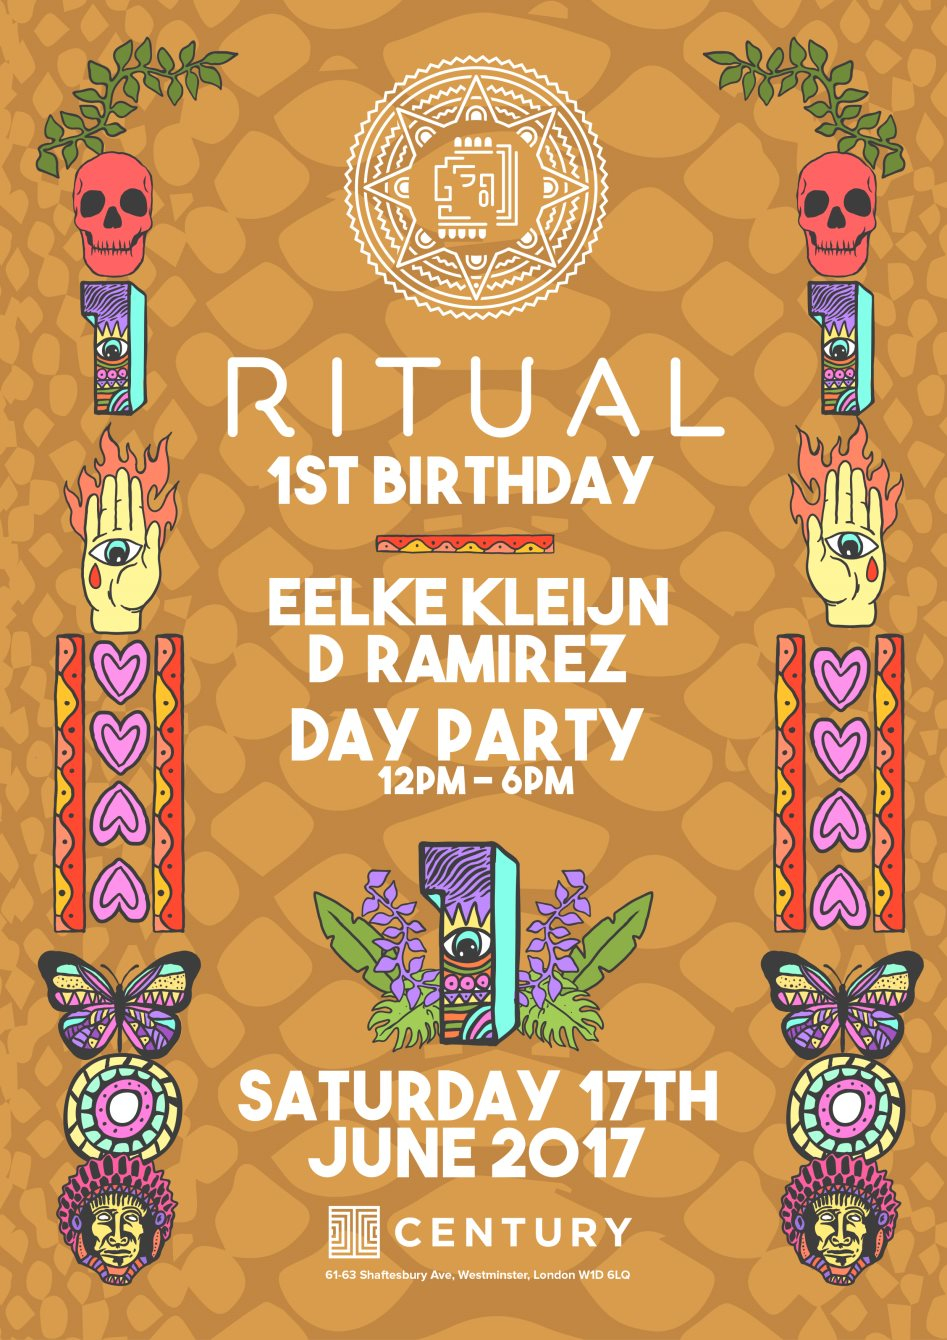 Ritual 1st Birthday - Rooftop Day Party with Eelke Kleijn, OC & Verde, D Ramirez + After Party - Flyer front